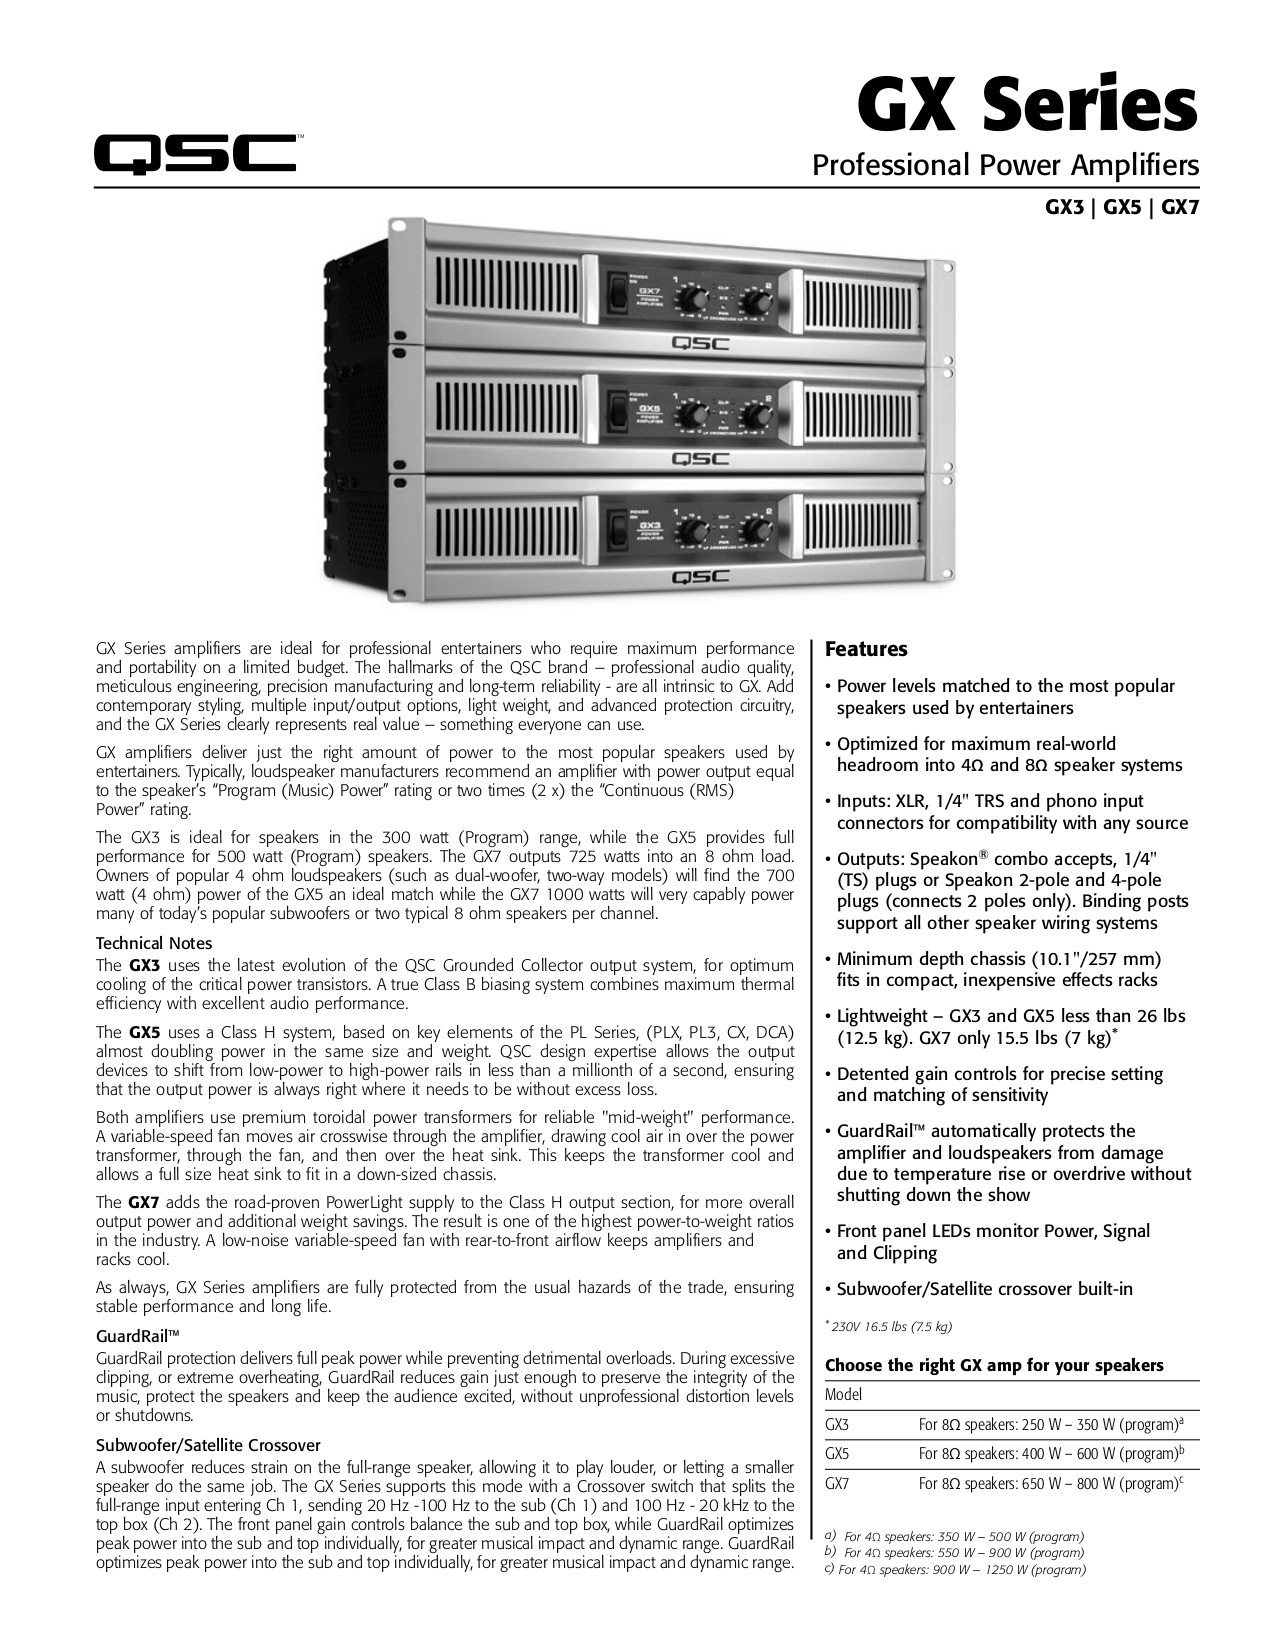 Download free pdf for QSC GX3 Amp manual on